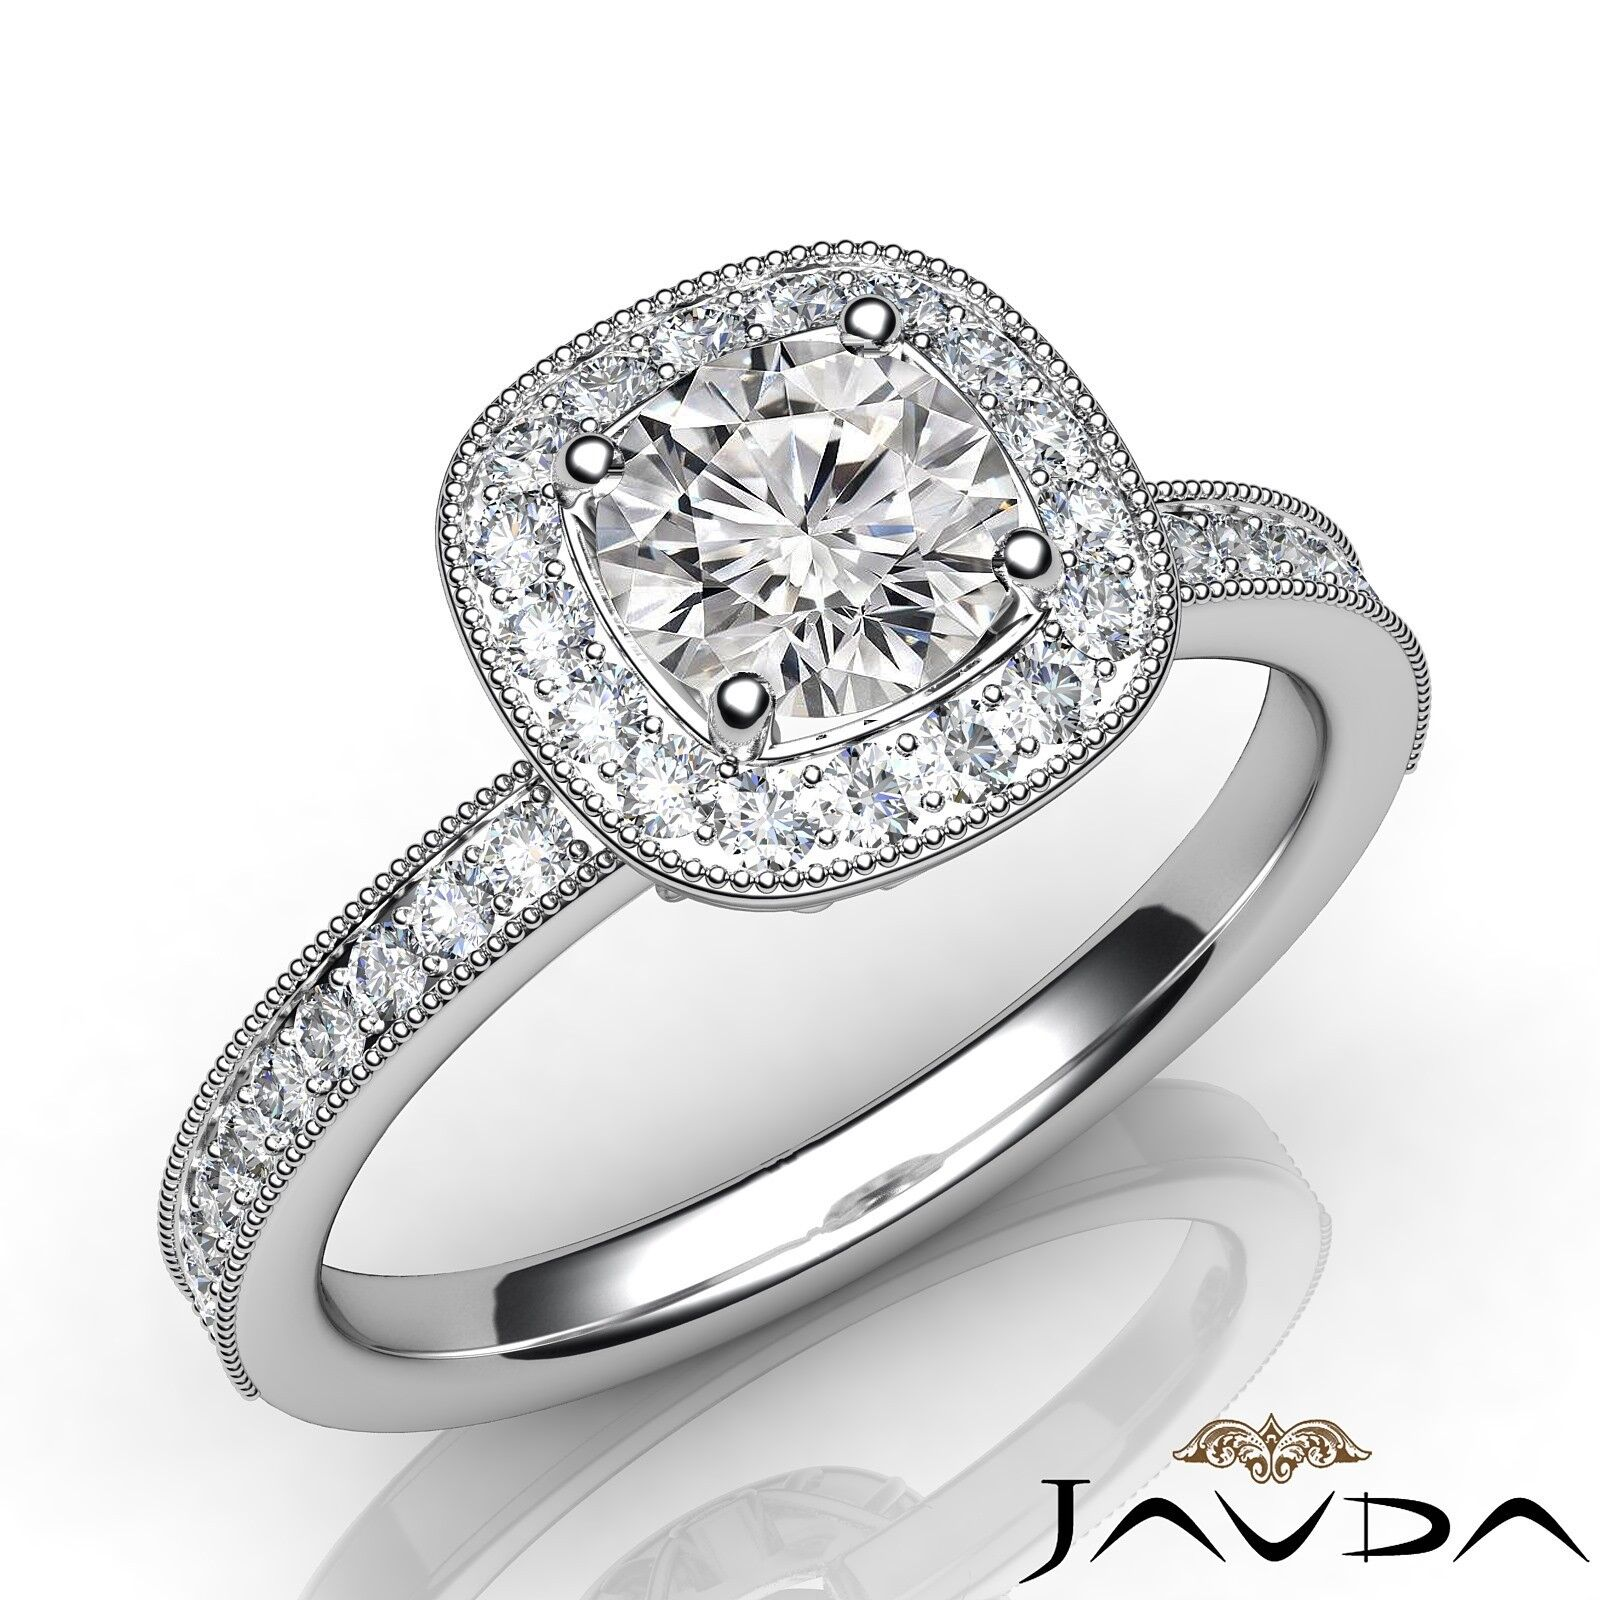 1.1ctw Halo Pave Set Round Diamond Engagement Ring GIA G-VVS2 White Gold Rings